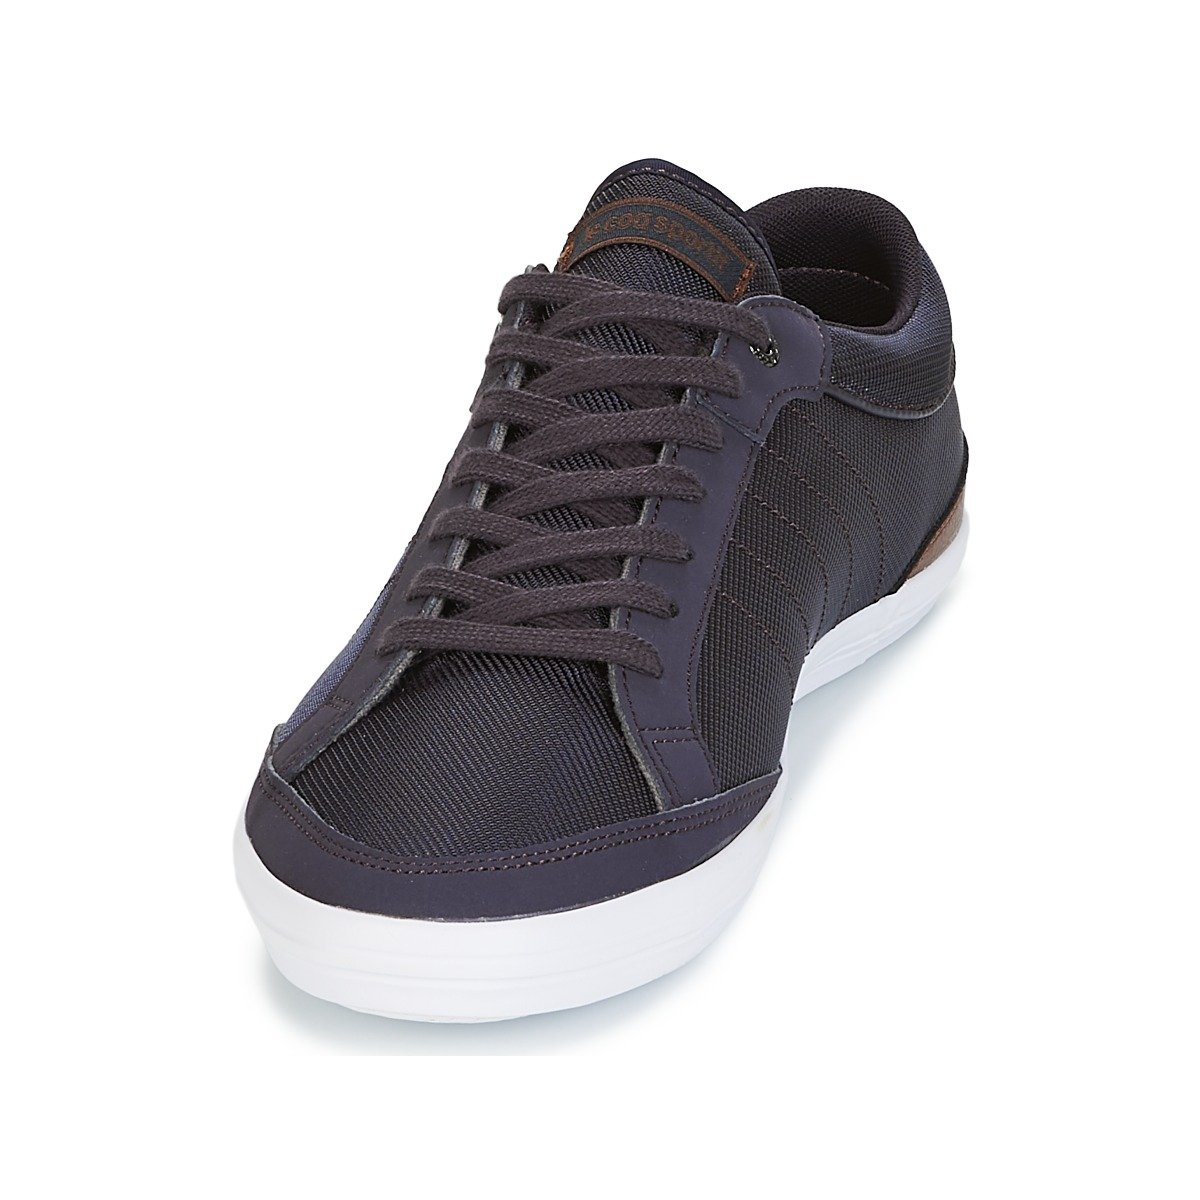 876a3bae4f5 Le Coq Sportif Feretcraft Modern Craft Chaussure Homme Gris Taille   Amazon.fr  Chaussures et Sacs